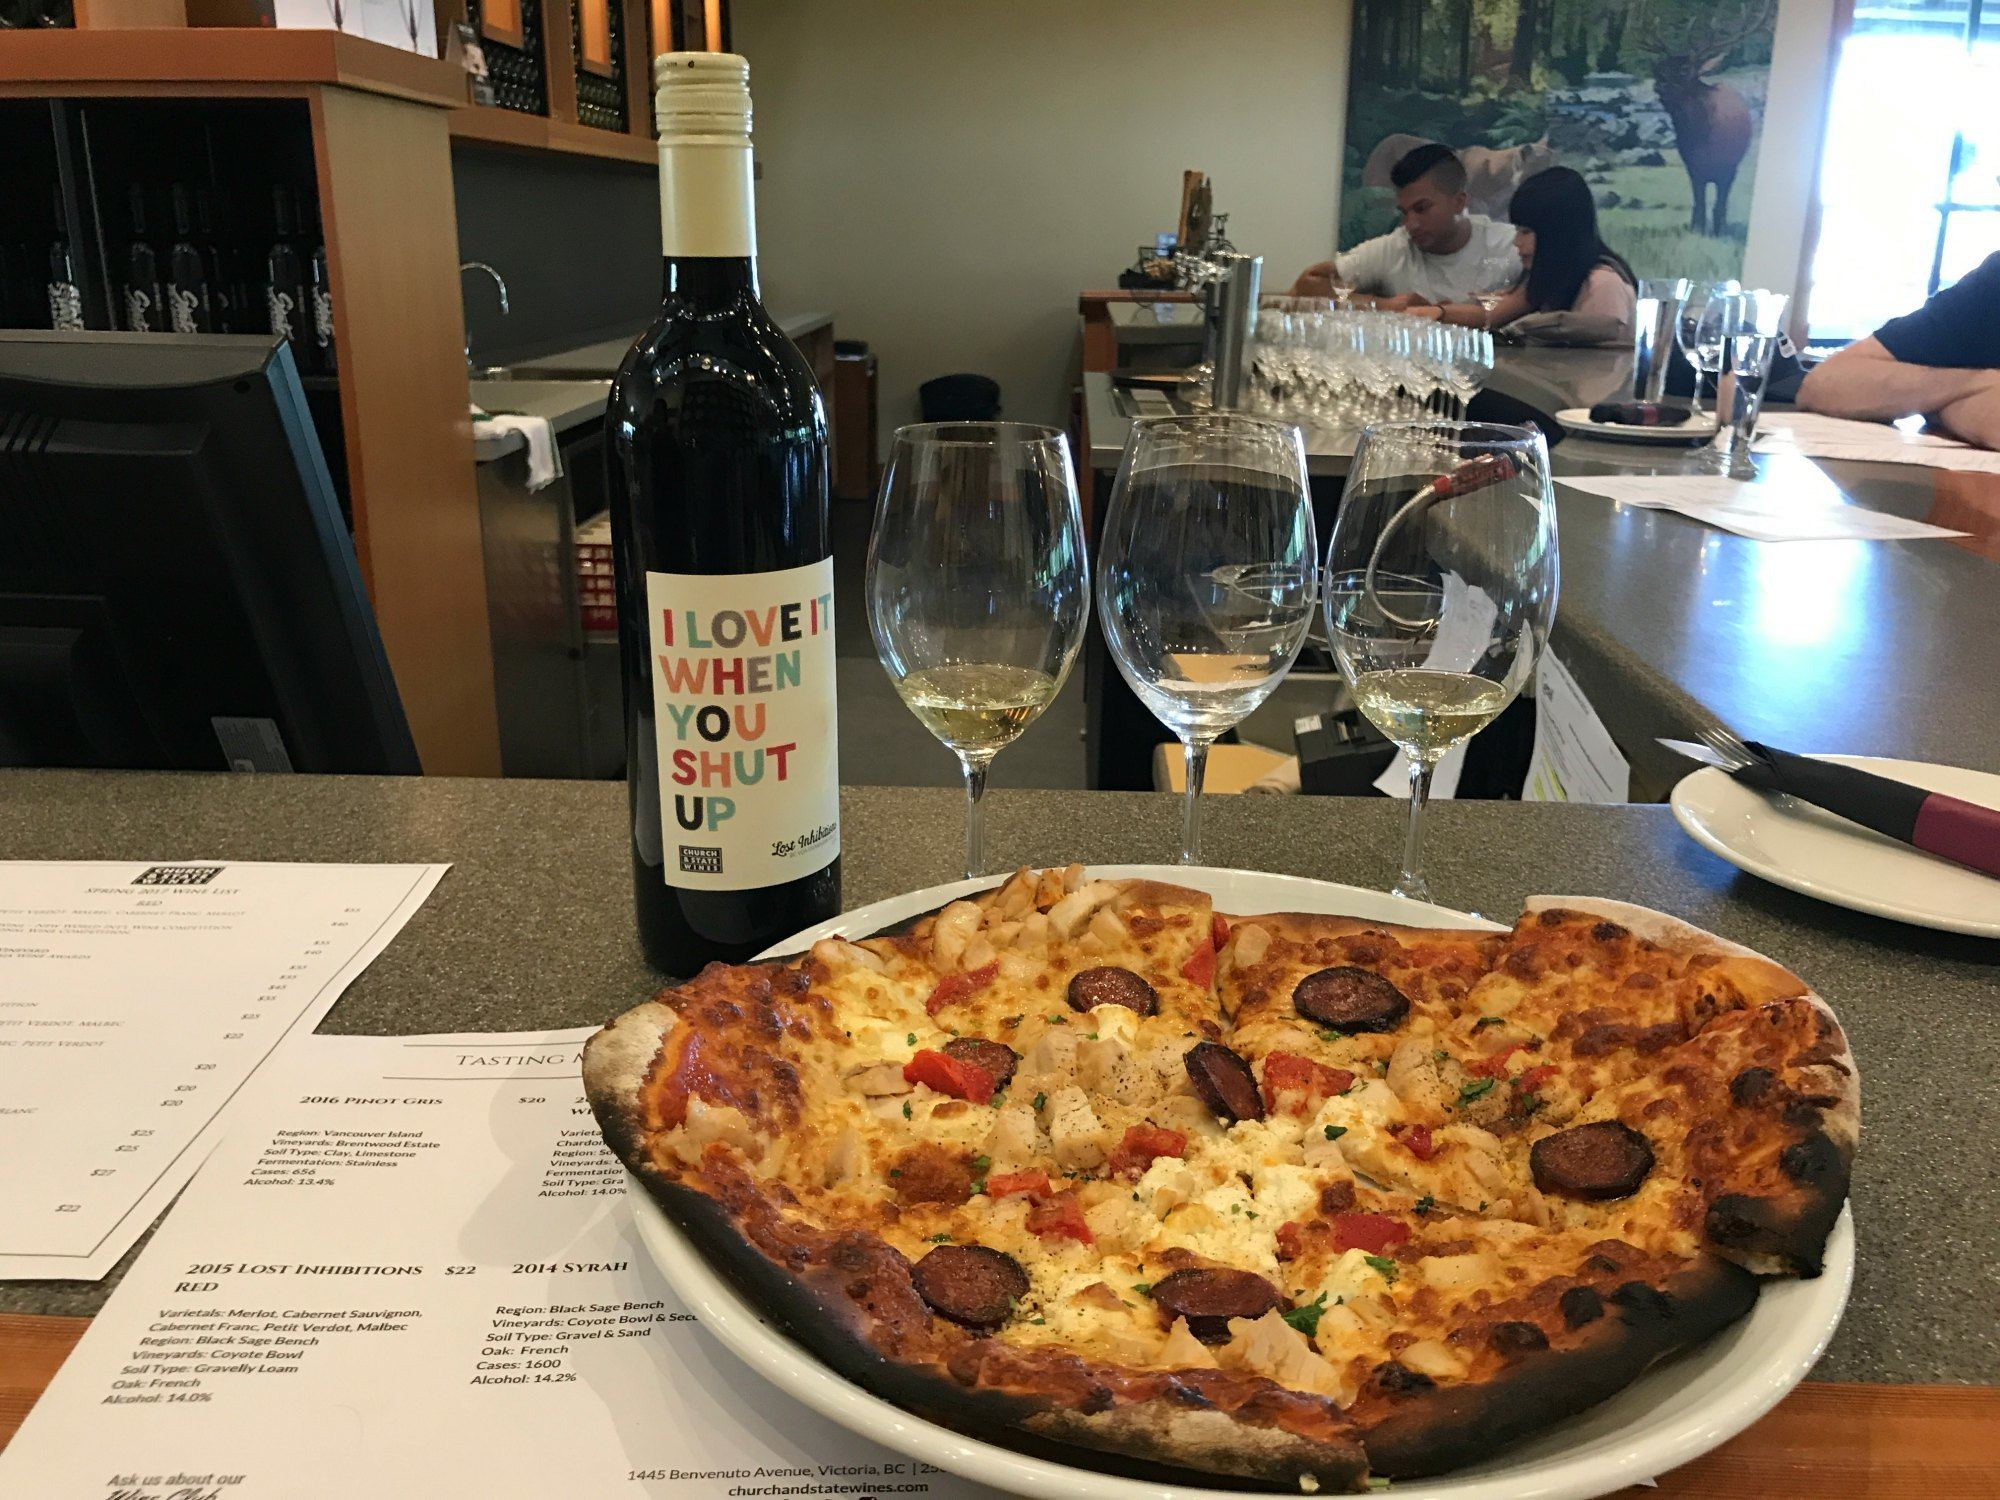 Foodie guide to Vancouver - Church and state winery near Victoria Canada Photo: Heatheronhertravels.com